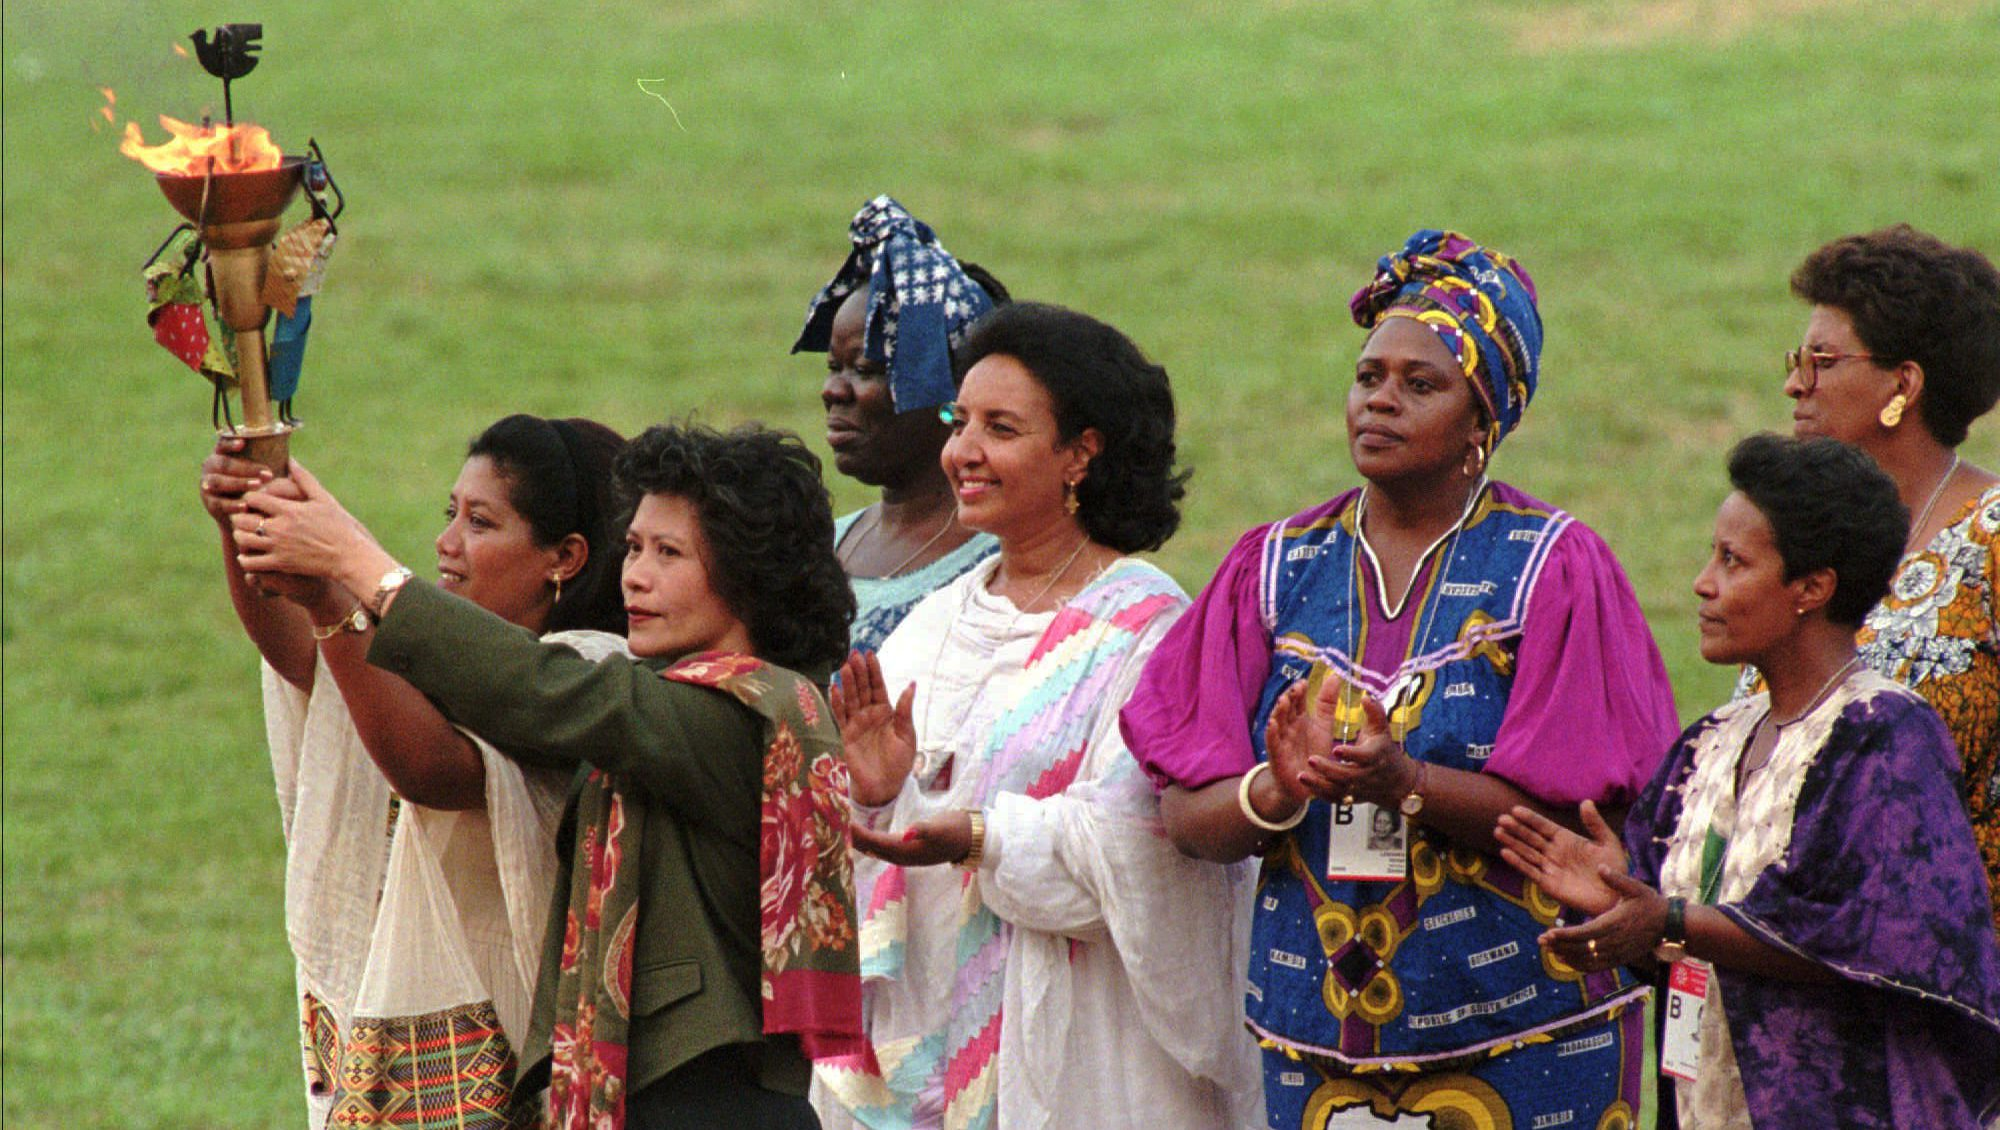 """Women representing the different cultures of the world hold the """"peace torch"""" during the opening ceremony for the Non-Governmental Organizations Forum on Women at the Olympic Stadium in Beijing Wednesday August 30, 1995. (AP Photo/Anat Givon)"""